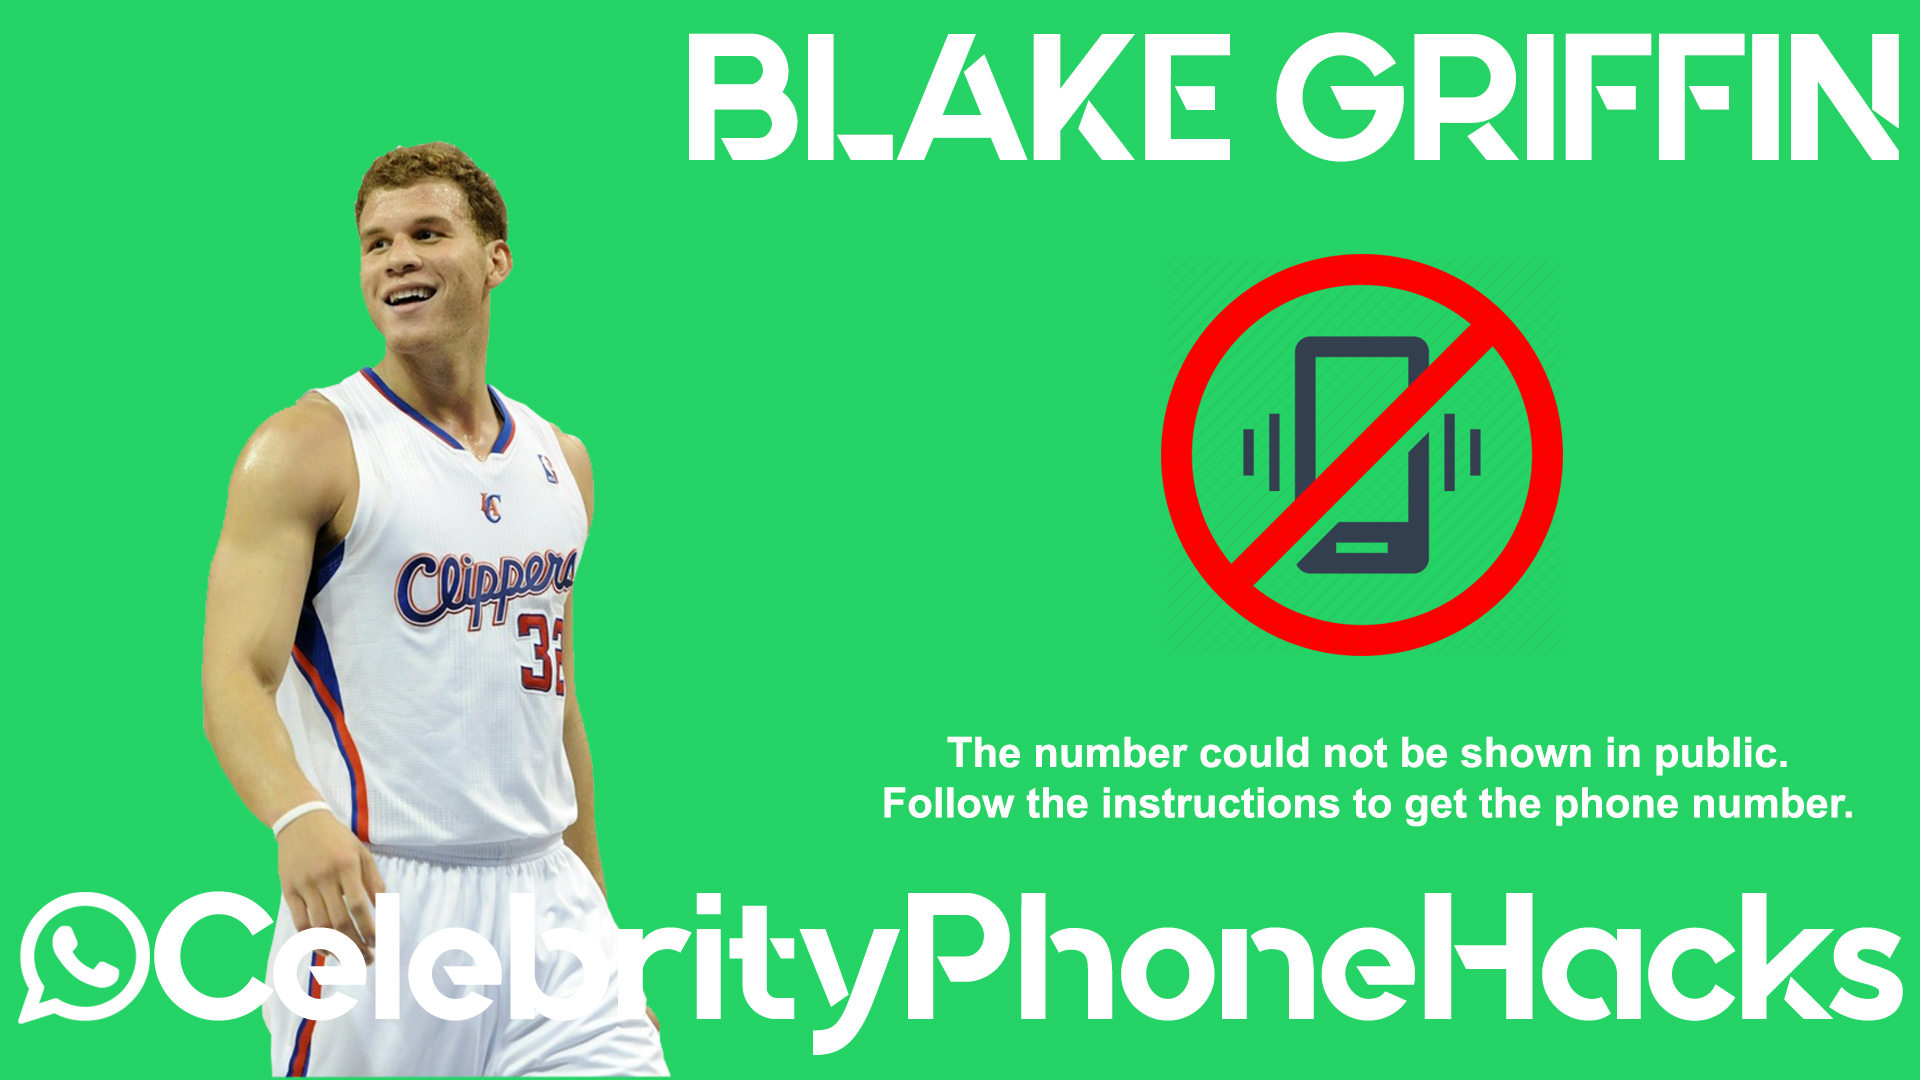 Blake Griffin real phone number 2019 whatsapp hacked leaked